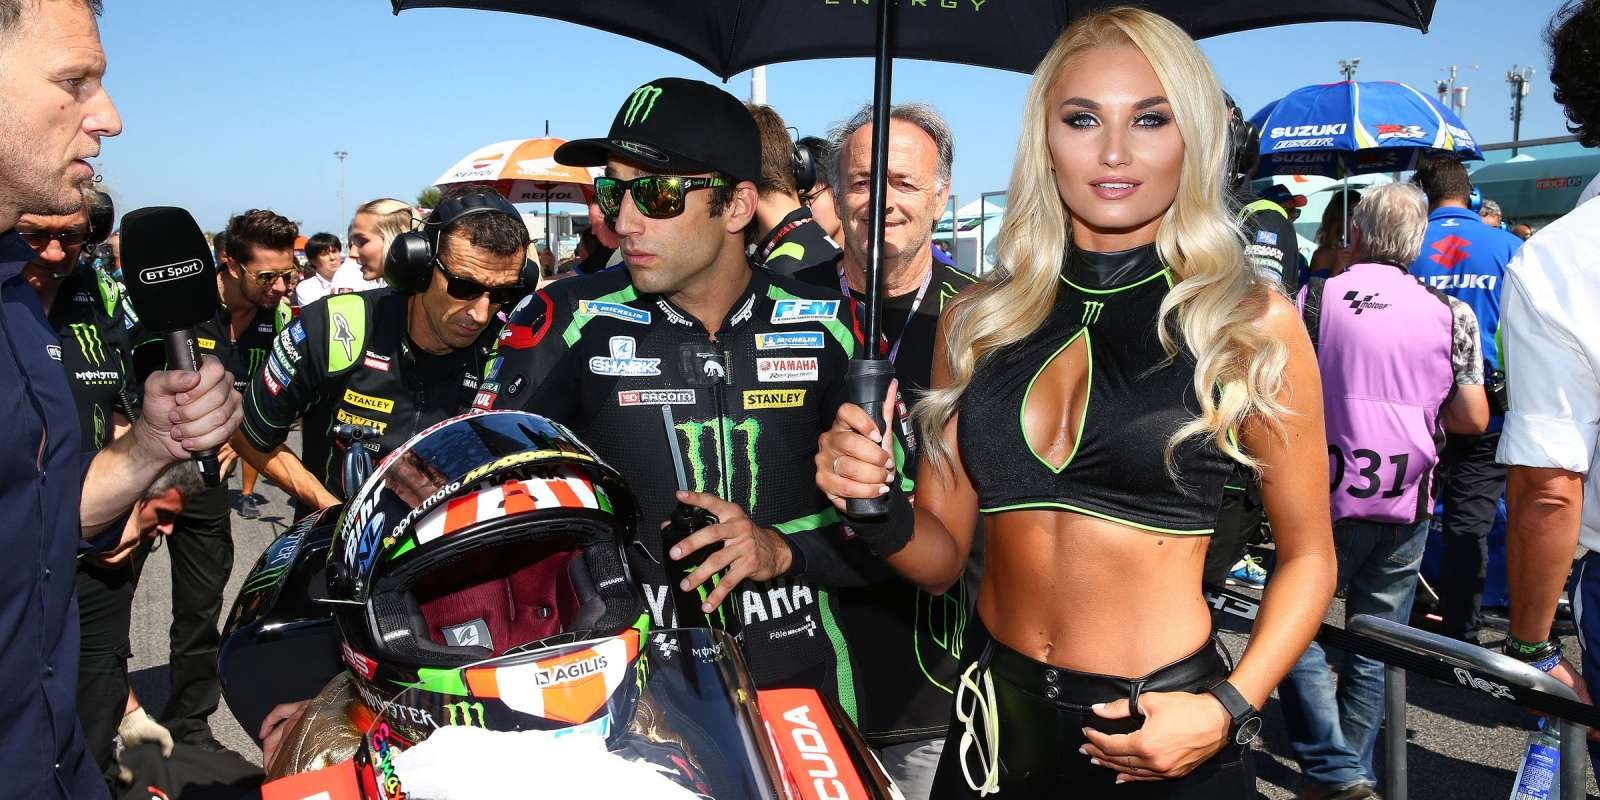 Images from the 2018 MotoGP in Misano, Italy